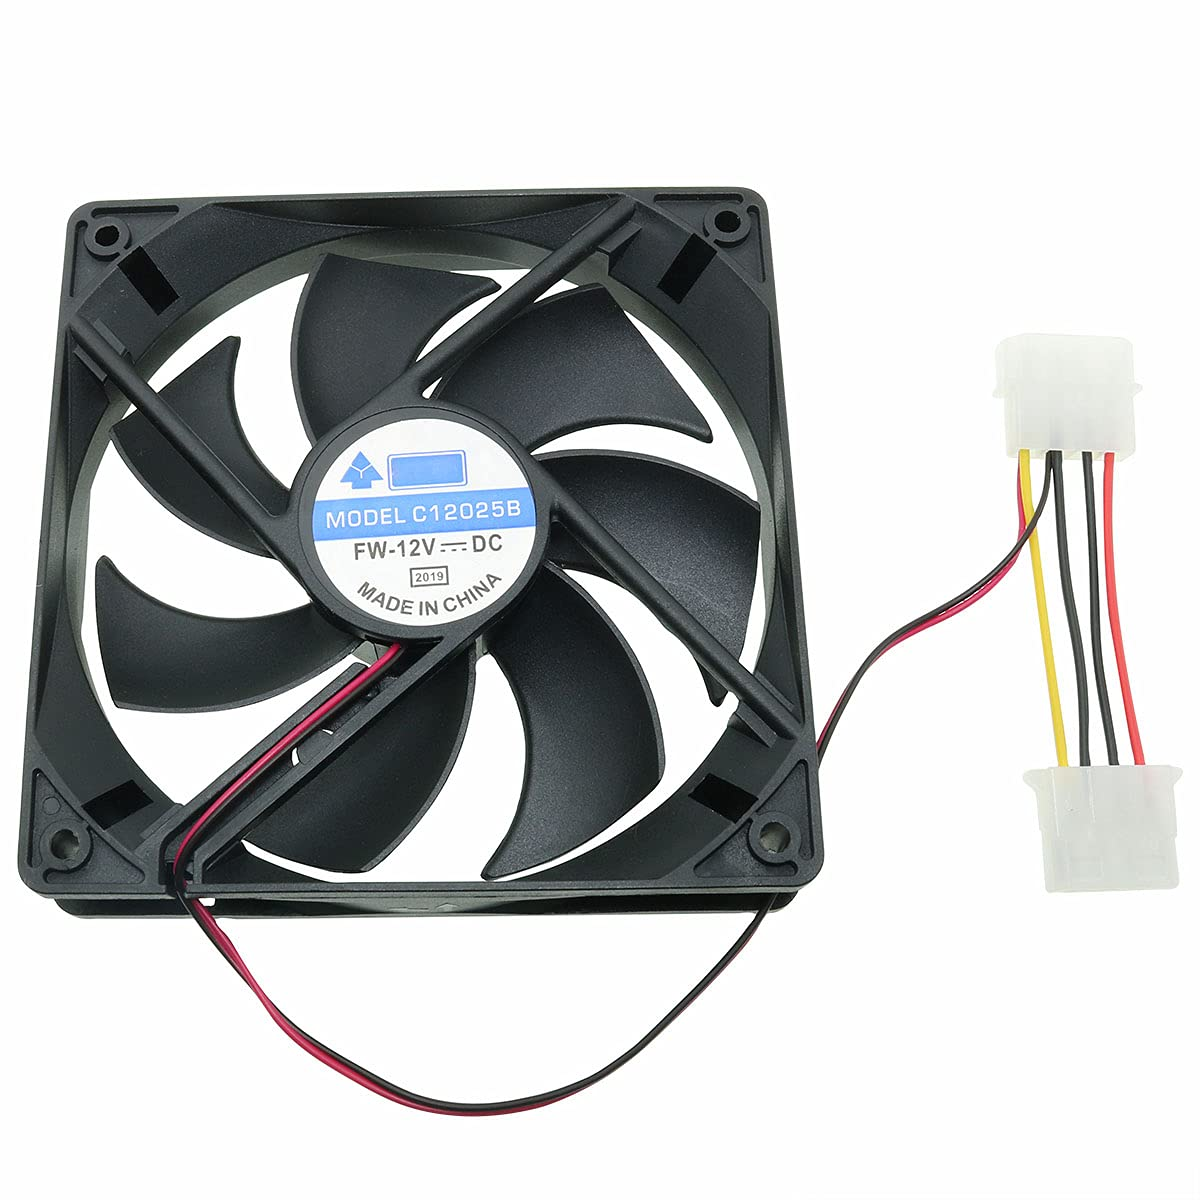 CZQC 120mm Computer Case Fan 120x120x25mm Brand new 4Pin 1200PRM DC Free shipping anywhere in the nation 12V Br